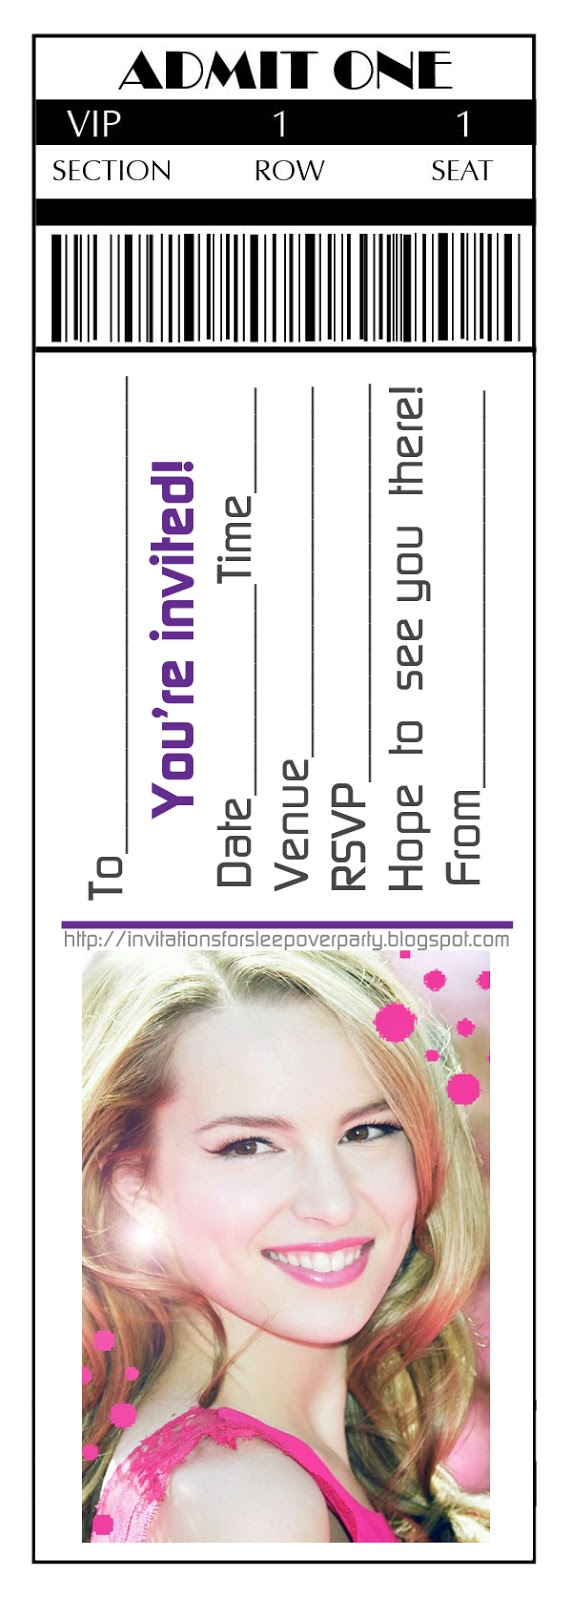 TICKET STYLE VIP PASS PARTY INVITATIONS